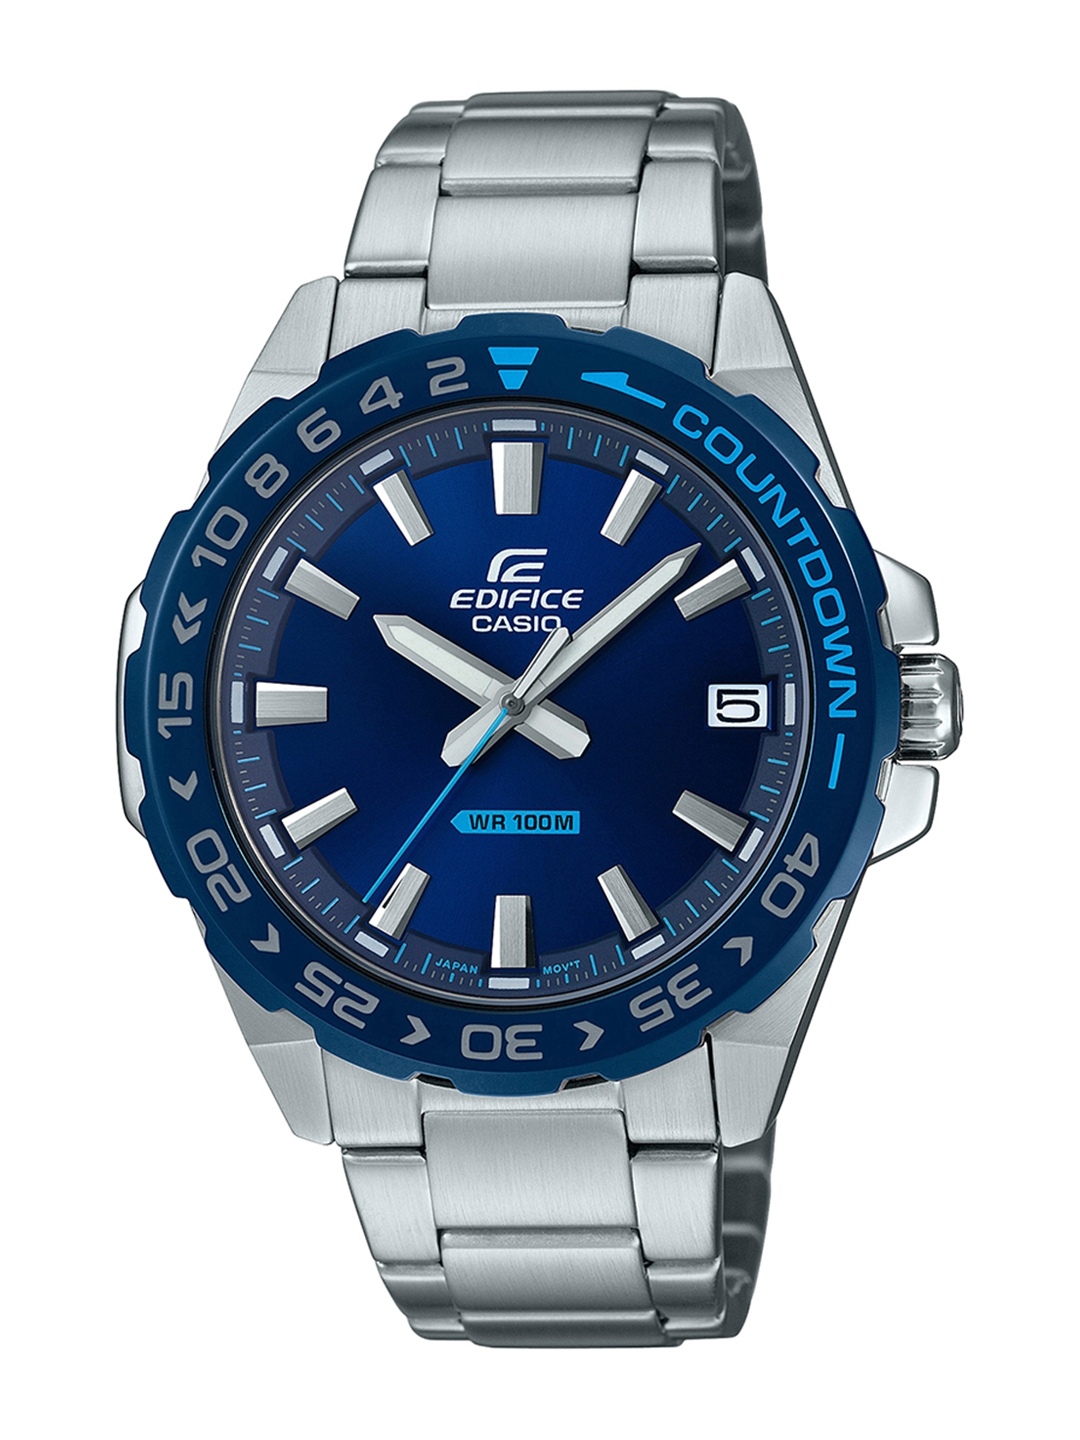 Casio Edifice Men Blue Analogue watch ED482 EFV 120DB 2AVUDF